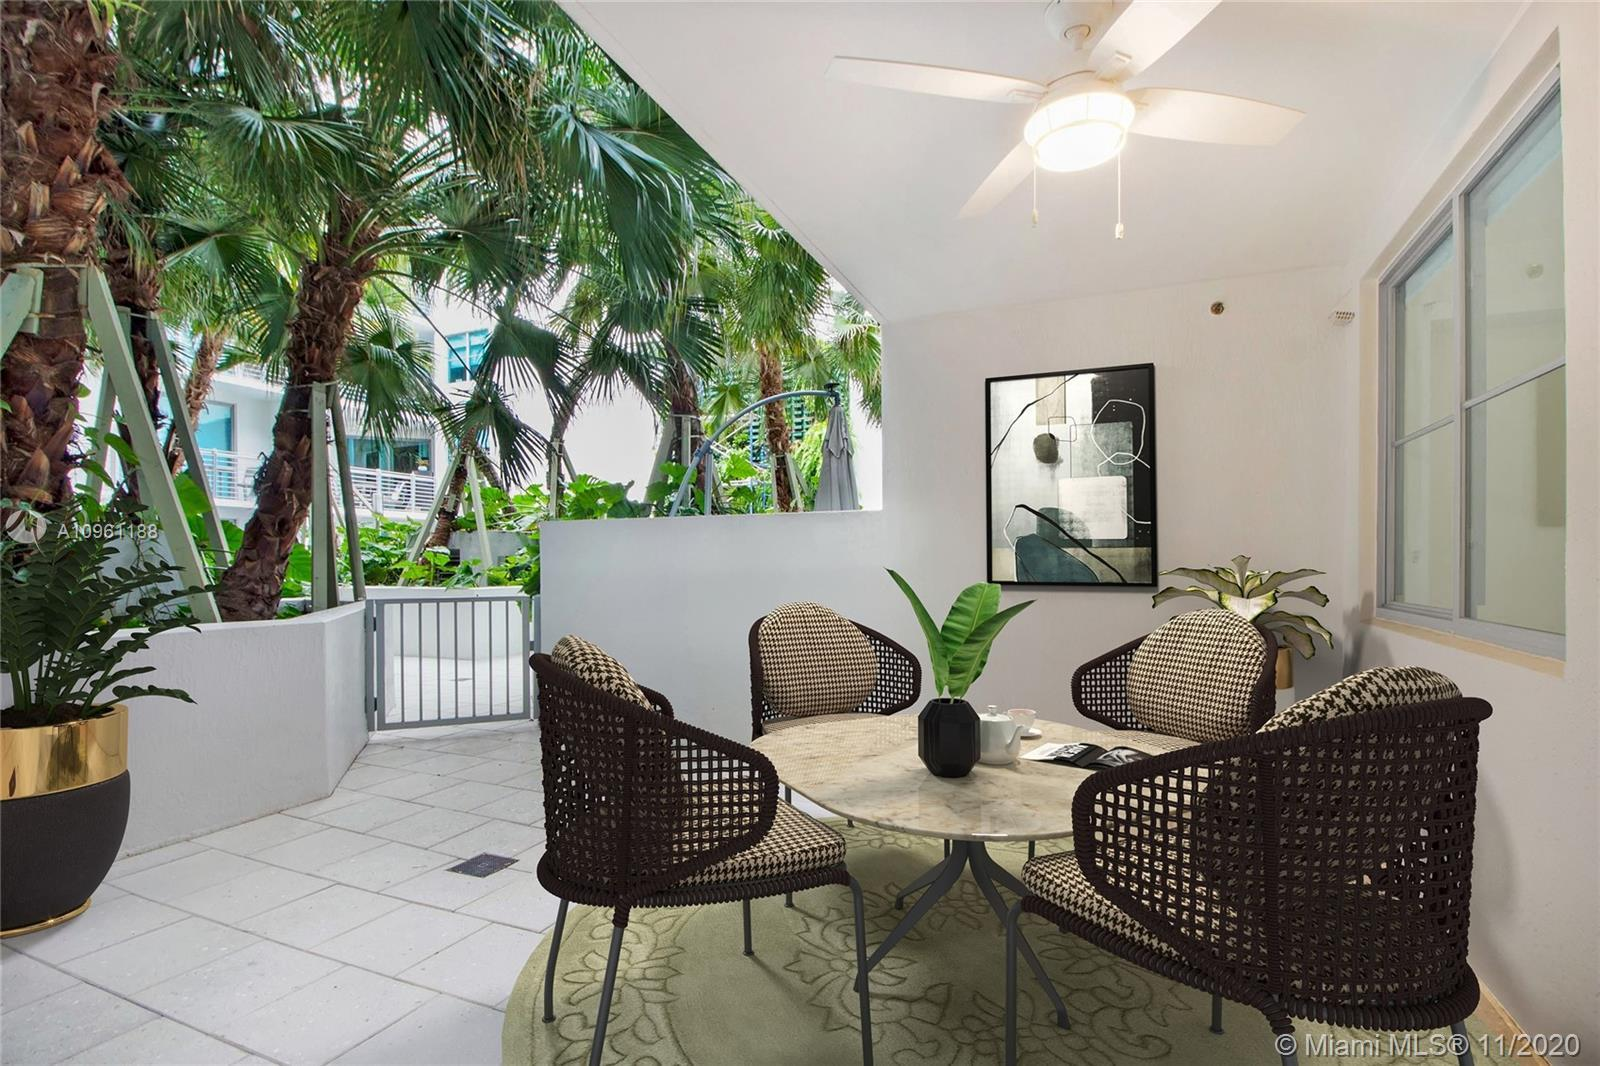 Located in the coveted South of Fifth neighborhood, this spacious 2 Bed/2.5 Bath+DEN boasts 1,500 Sq